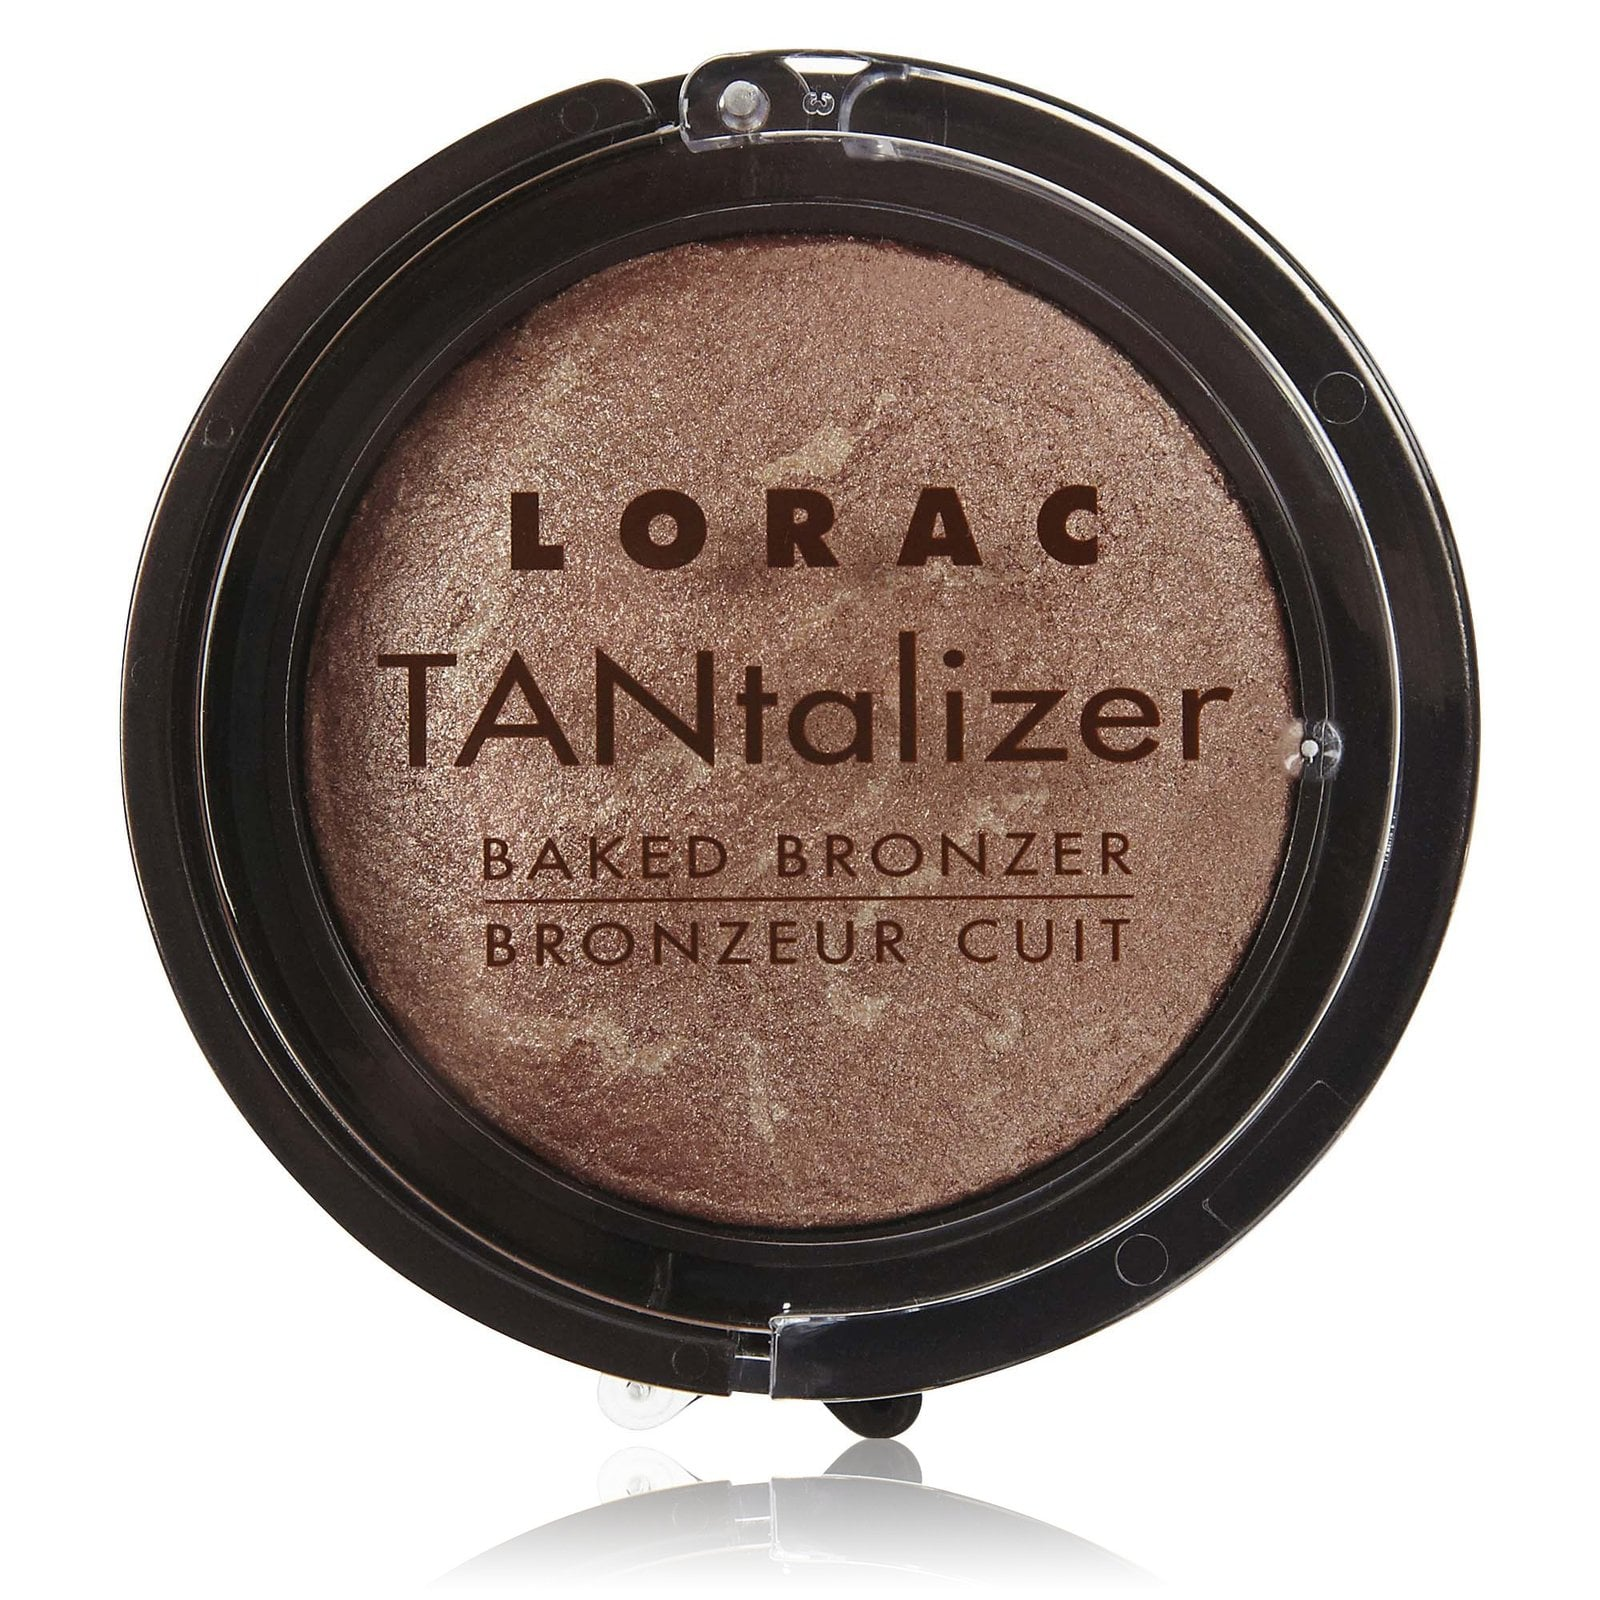 Suitable for face and body, Lorac Tantalizer Baked Bronzer ($8) can be your go-to all season.